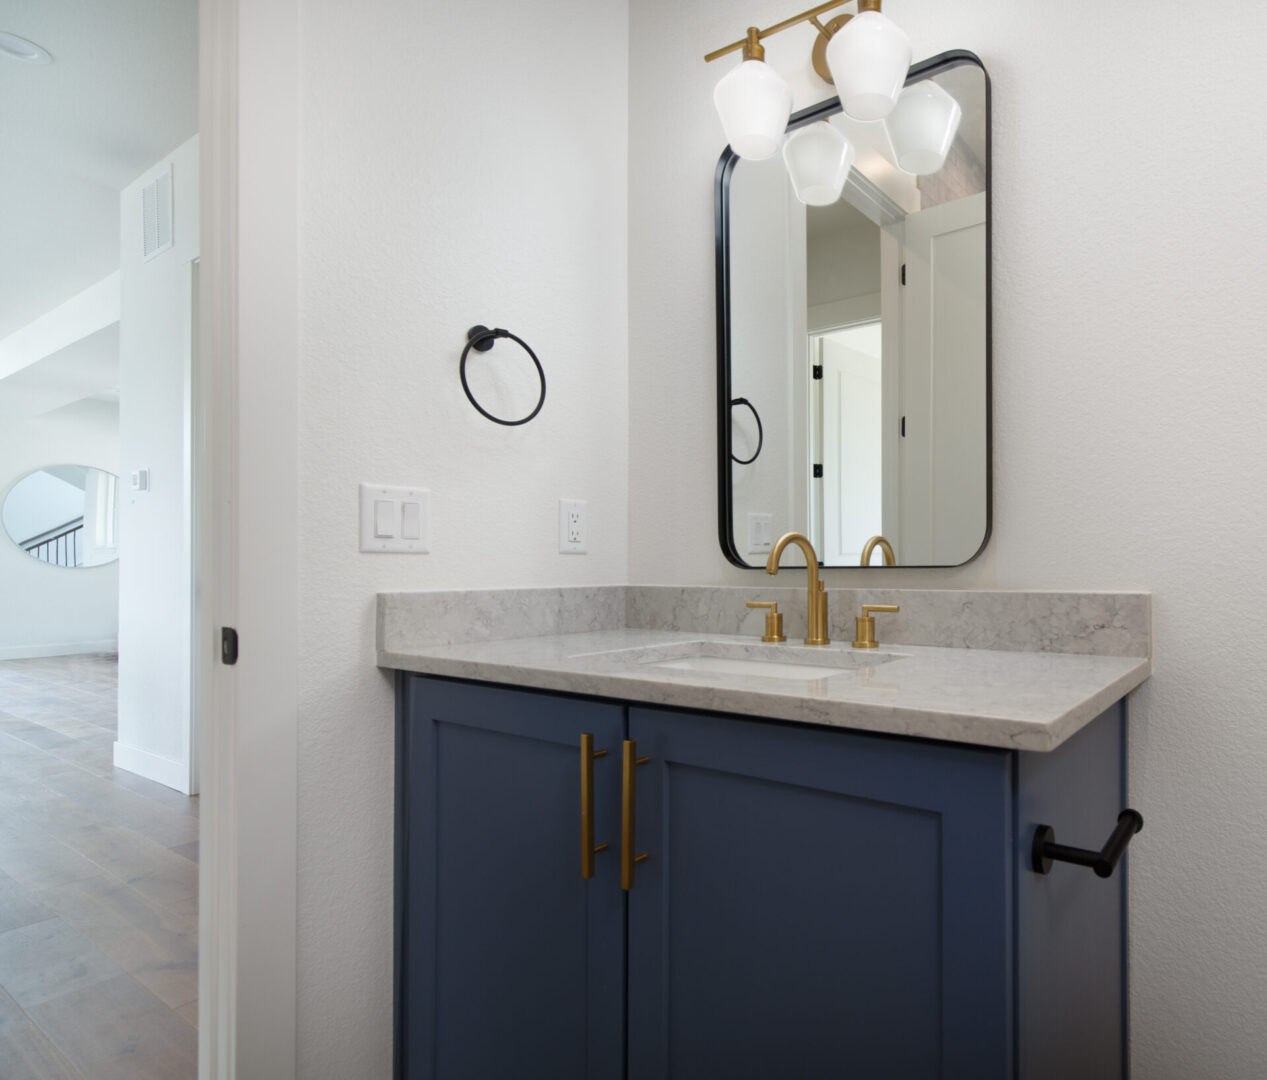 kitchen sink with blue and gold accents